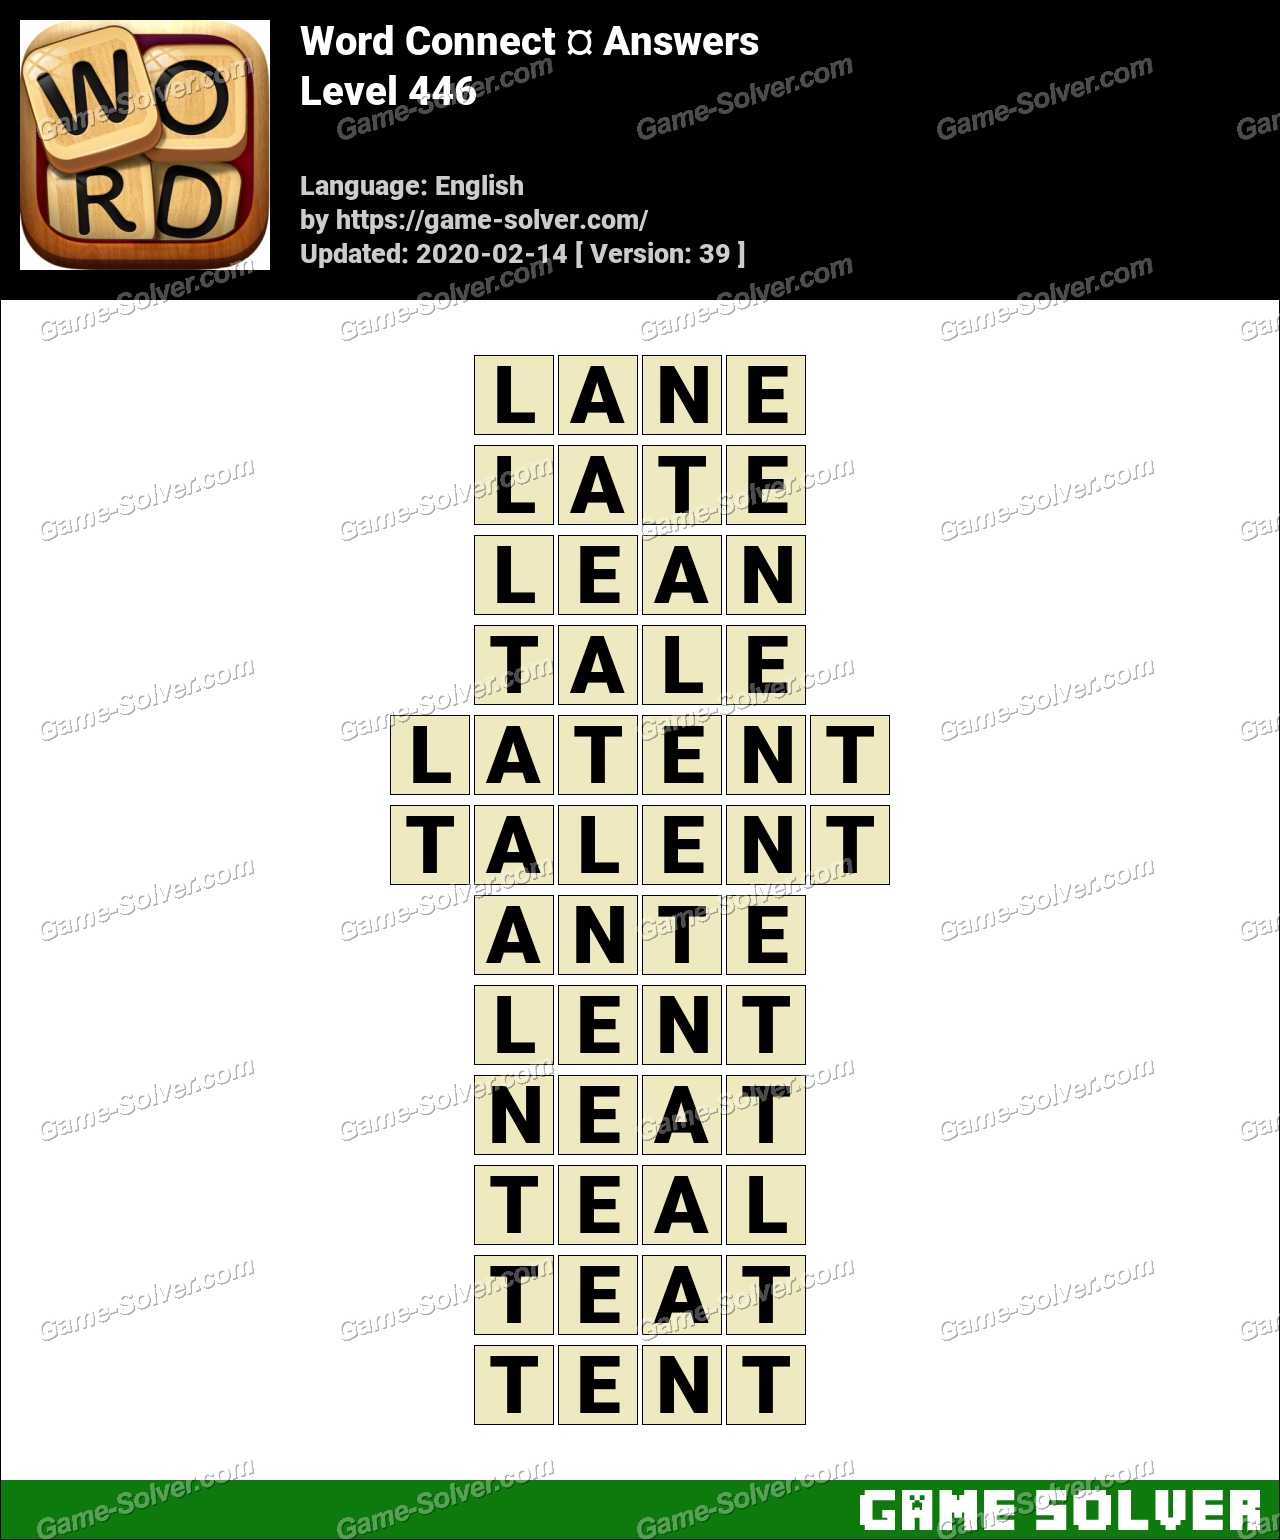 Word Connect Level 446 Answers